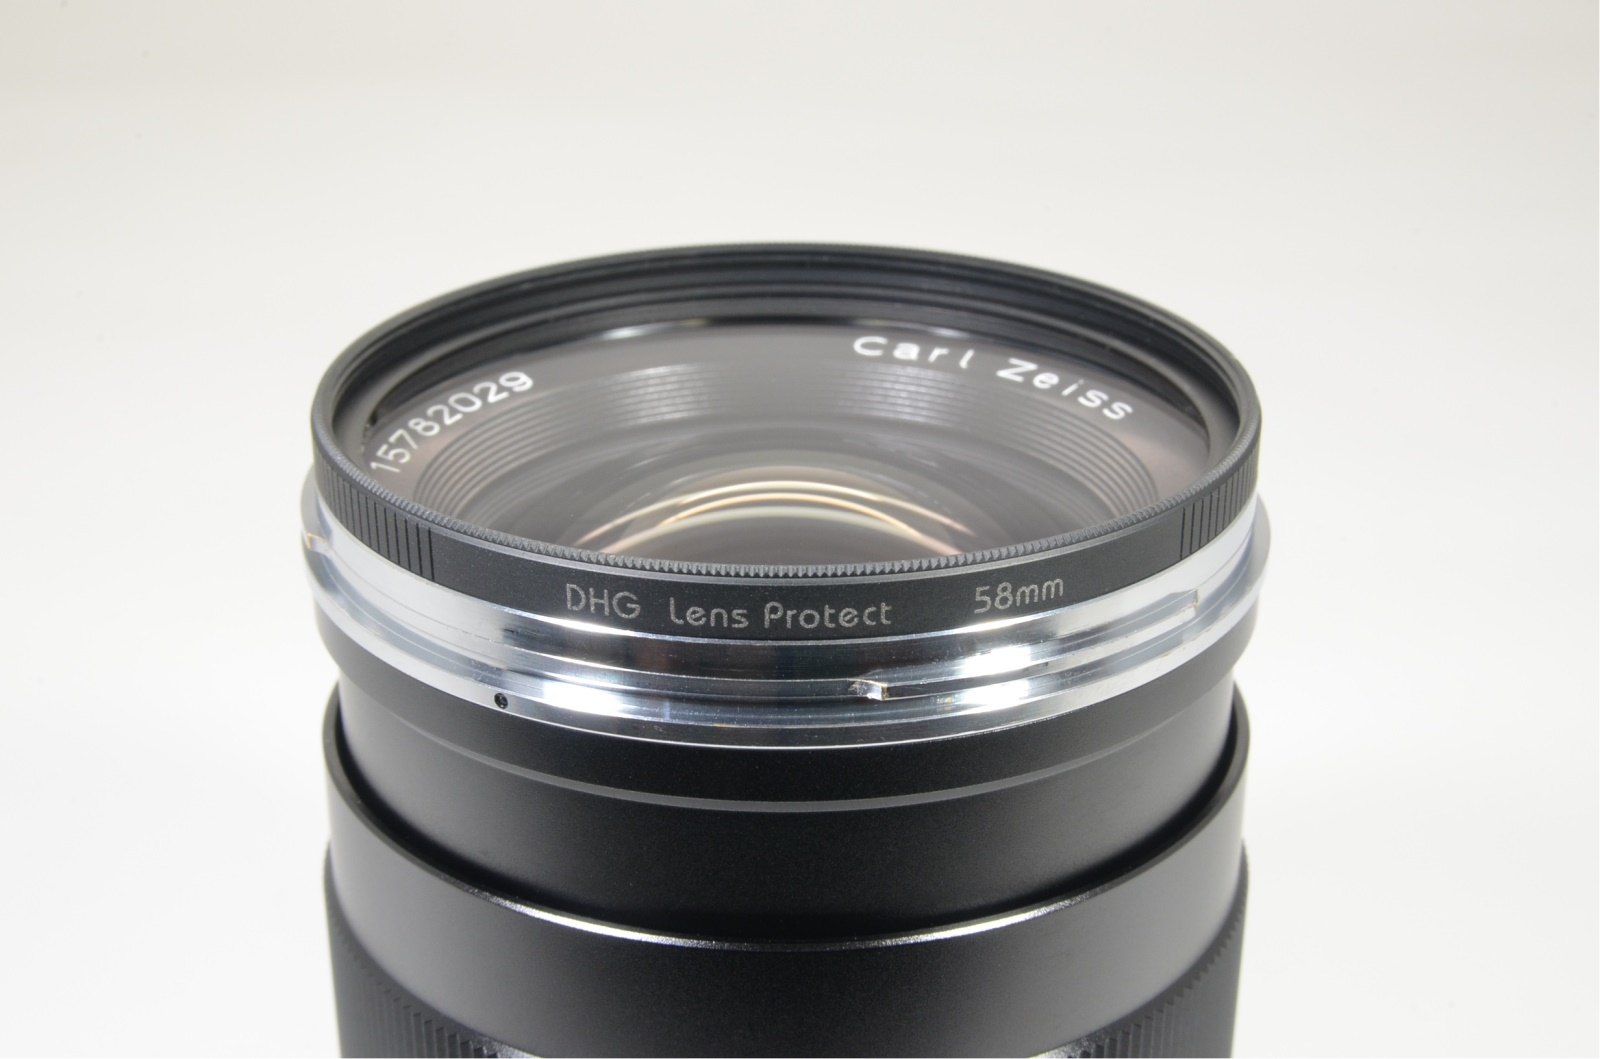 carl zeiss distagon t* 35mm f2 zf.2 lens for nikon f mount from japan